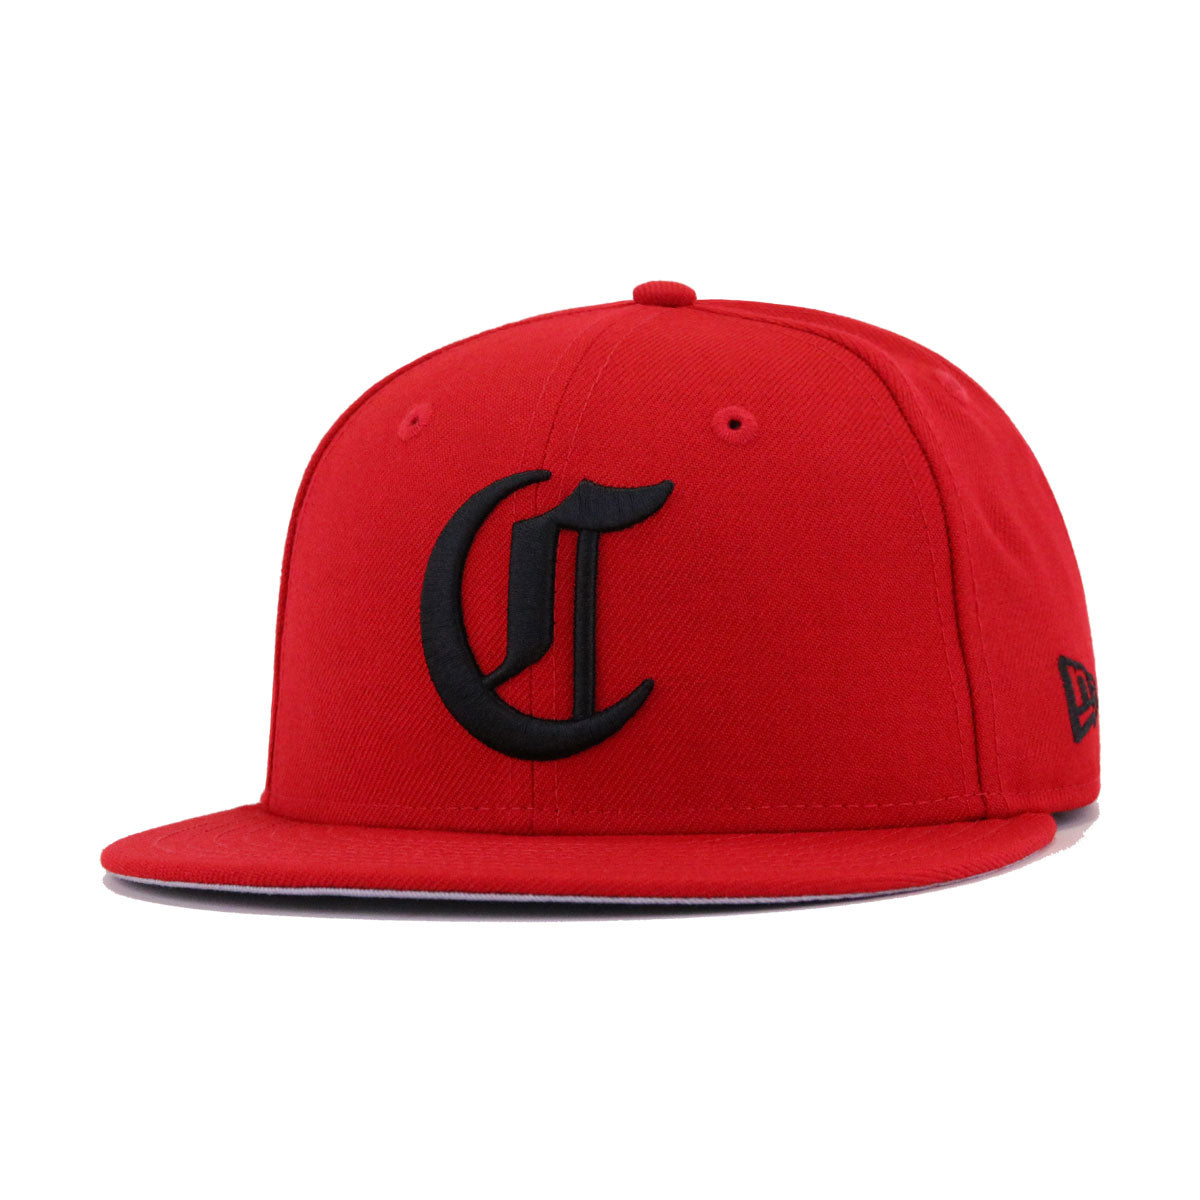 Cincinnati Reds Scarlet 150th Anniversary Cooperstown New Era 59Fifty Fitted